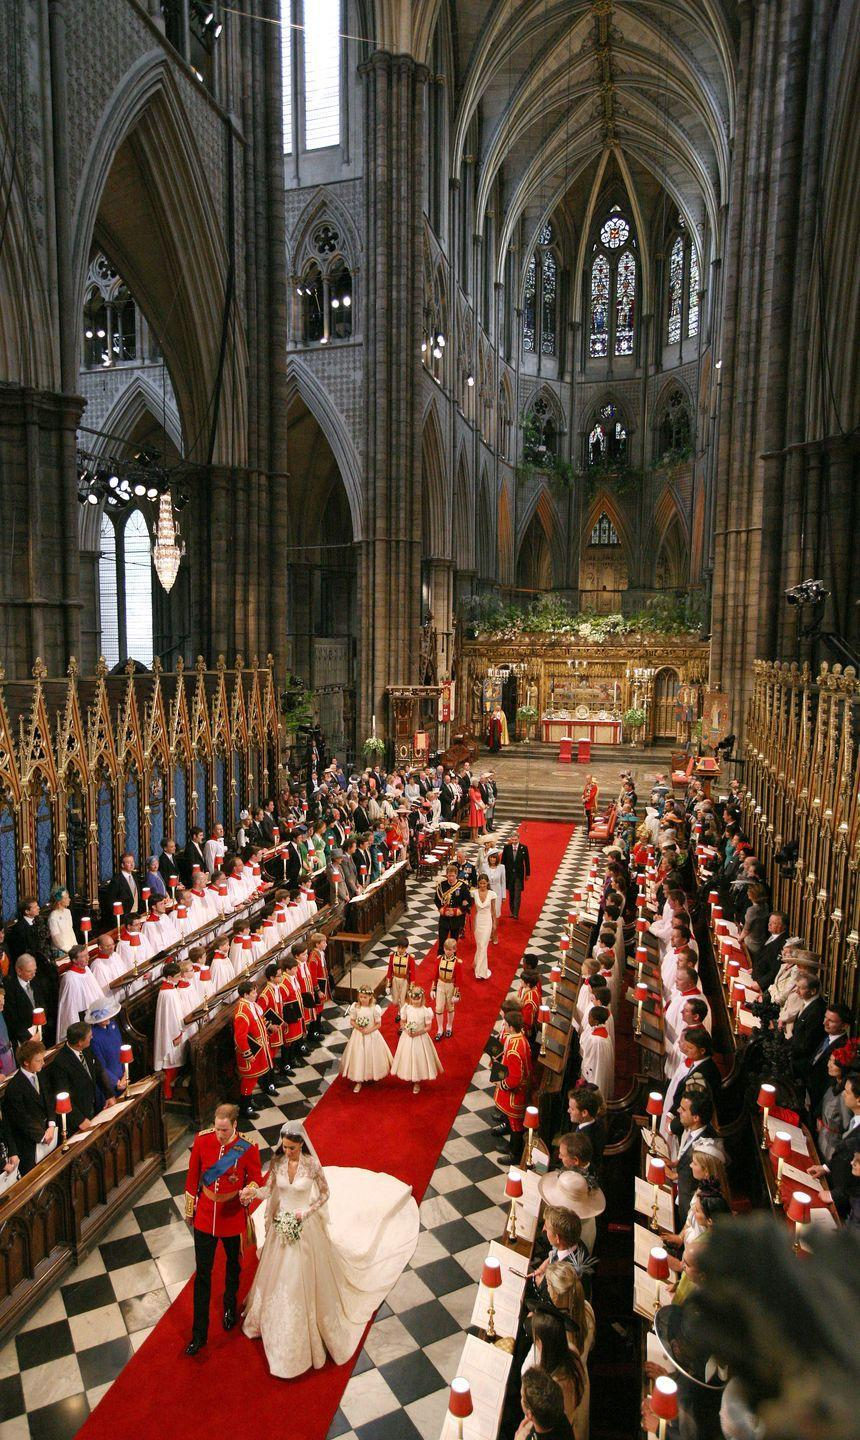 """<p>The London church traditionally hosts royal weddings, coronations, and other major events. It's only a five-minute drive from <a href=""""https://www.goodhousekeeping.com/life/entertainment/a33742/12-facts-about-buckingham-palace/"""" rel=""""nofollow noopener"""" target=""""_blank"""" data-ylk=""""slk:Buckingham Palace"""" class=""""link rapid-noclick-resp"""">Buckingham Palace</a>, where the couple kissed (twice!) in front of thousands of well-wishers below the iconic balcony. </p>"""